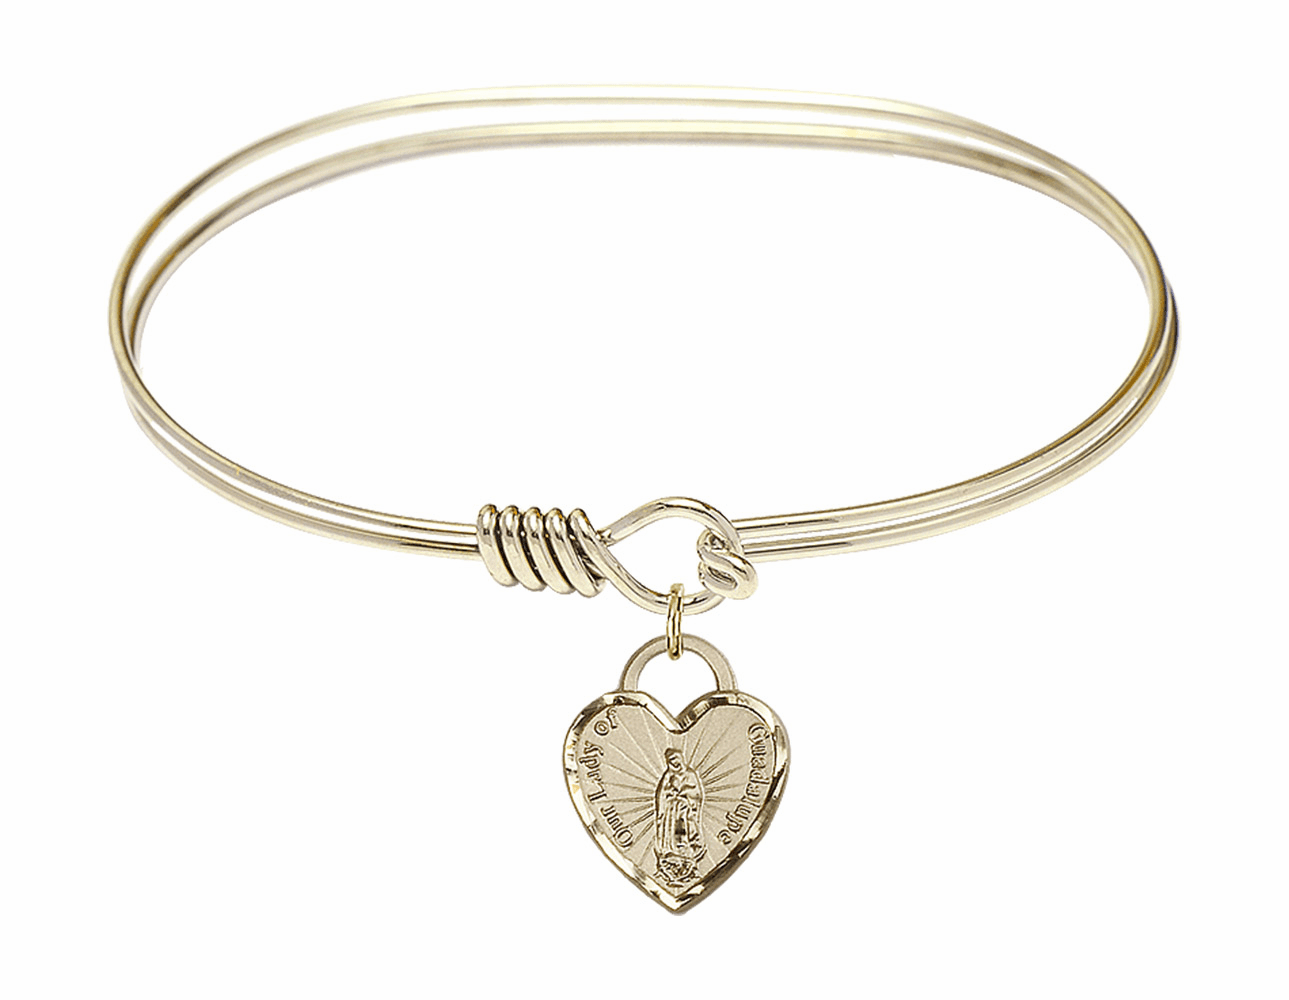 Round Eye Hook Bangle Bracelet w/Our Lady of Guadalupe Heart Charm by Bliss Mfg